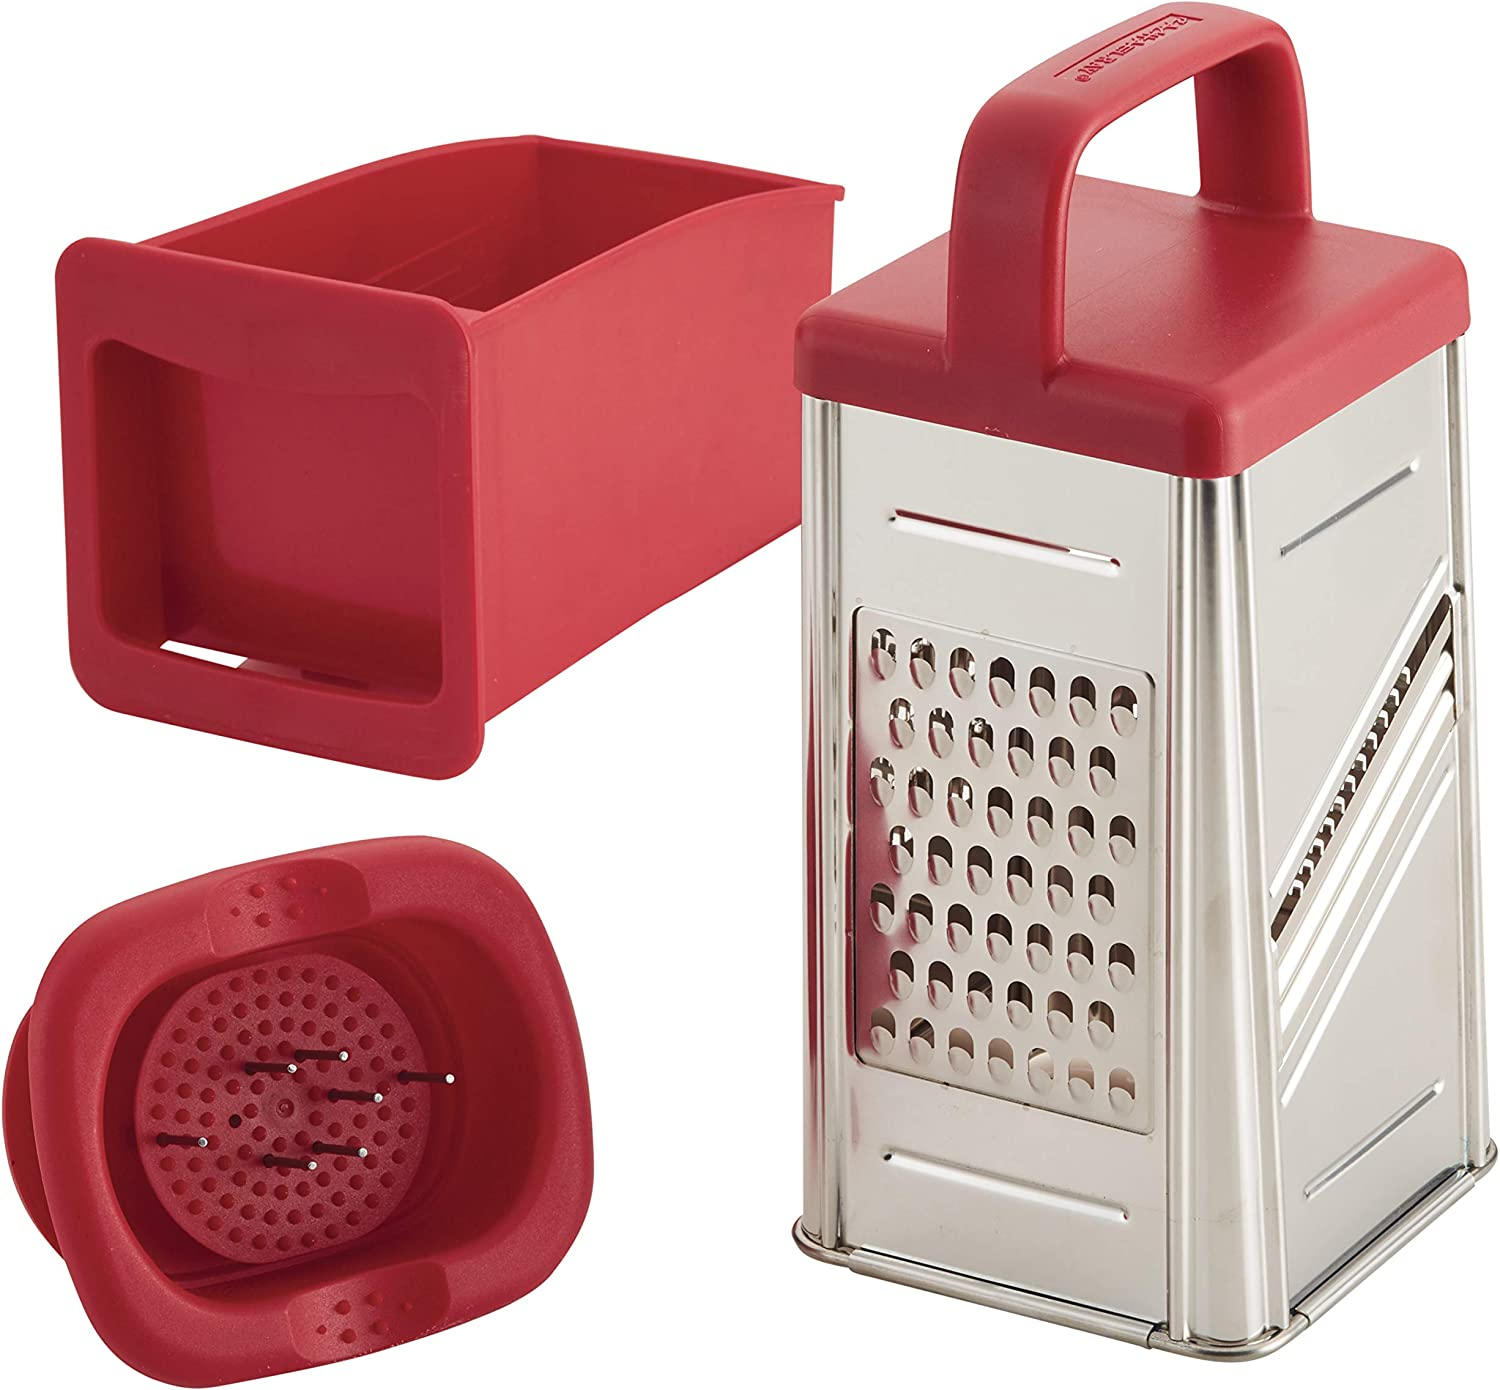 Rachael Ray 47649 Box Stainless Steel Grater, 4 cup, Red